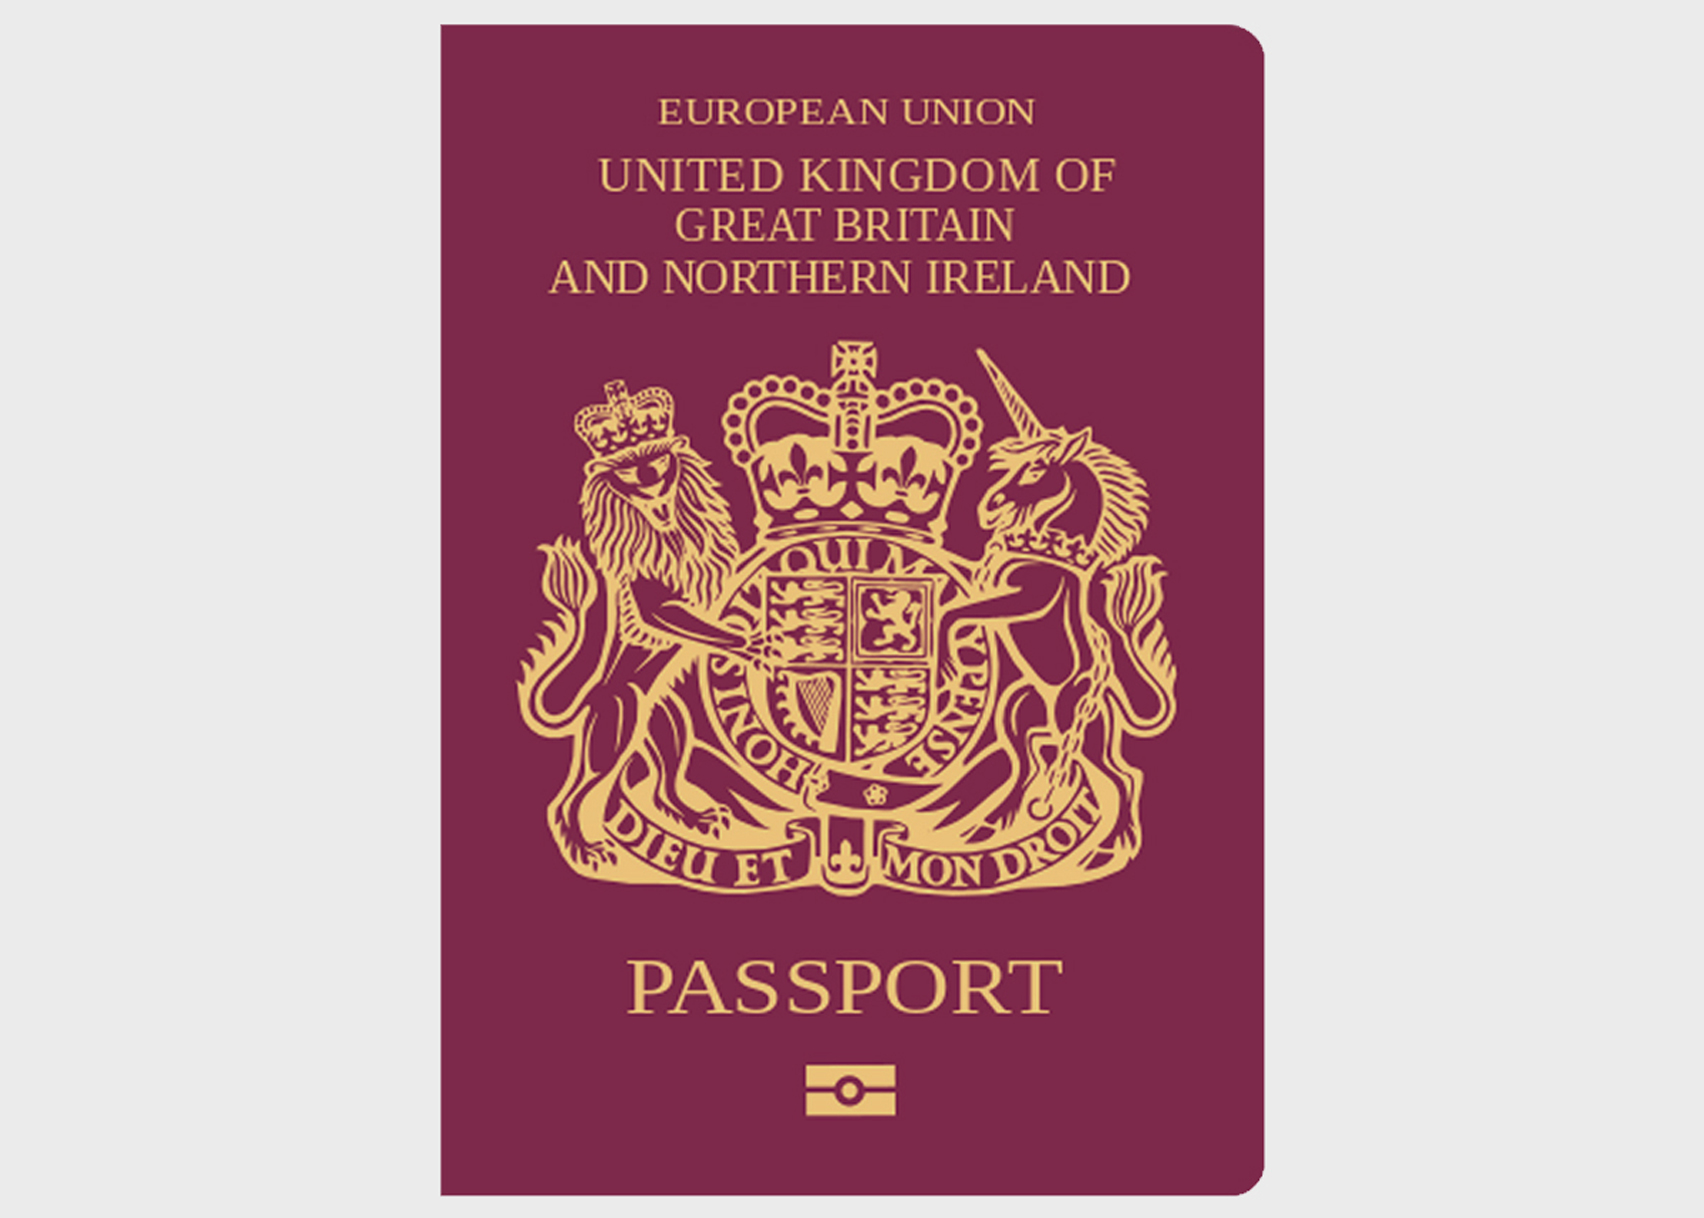 High court agrees with UK's refusal to issue gender-neutral passports